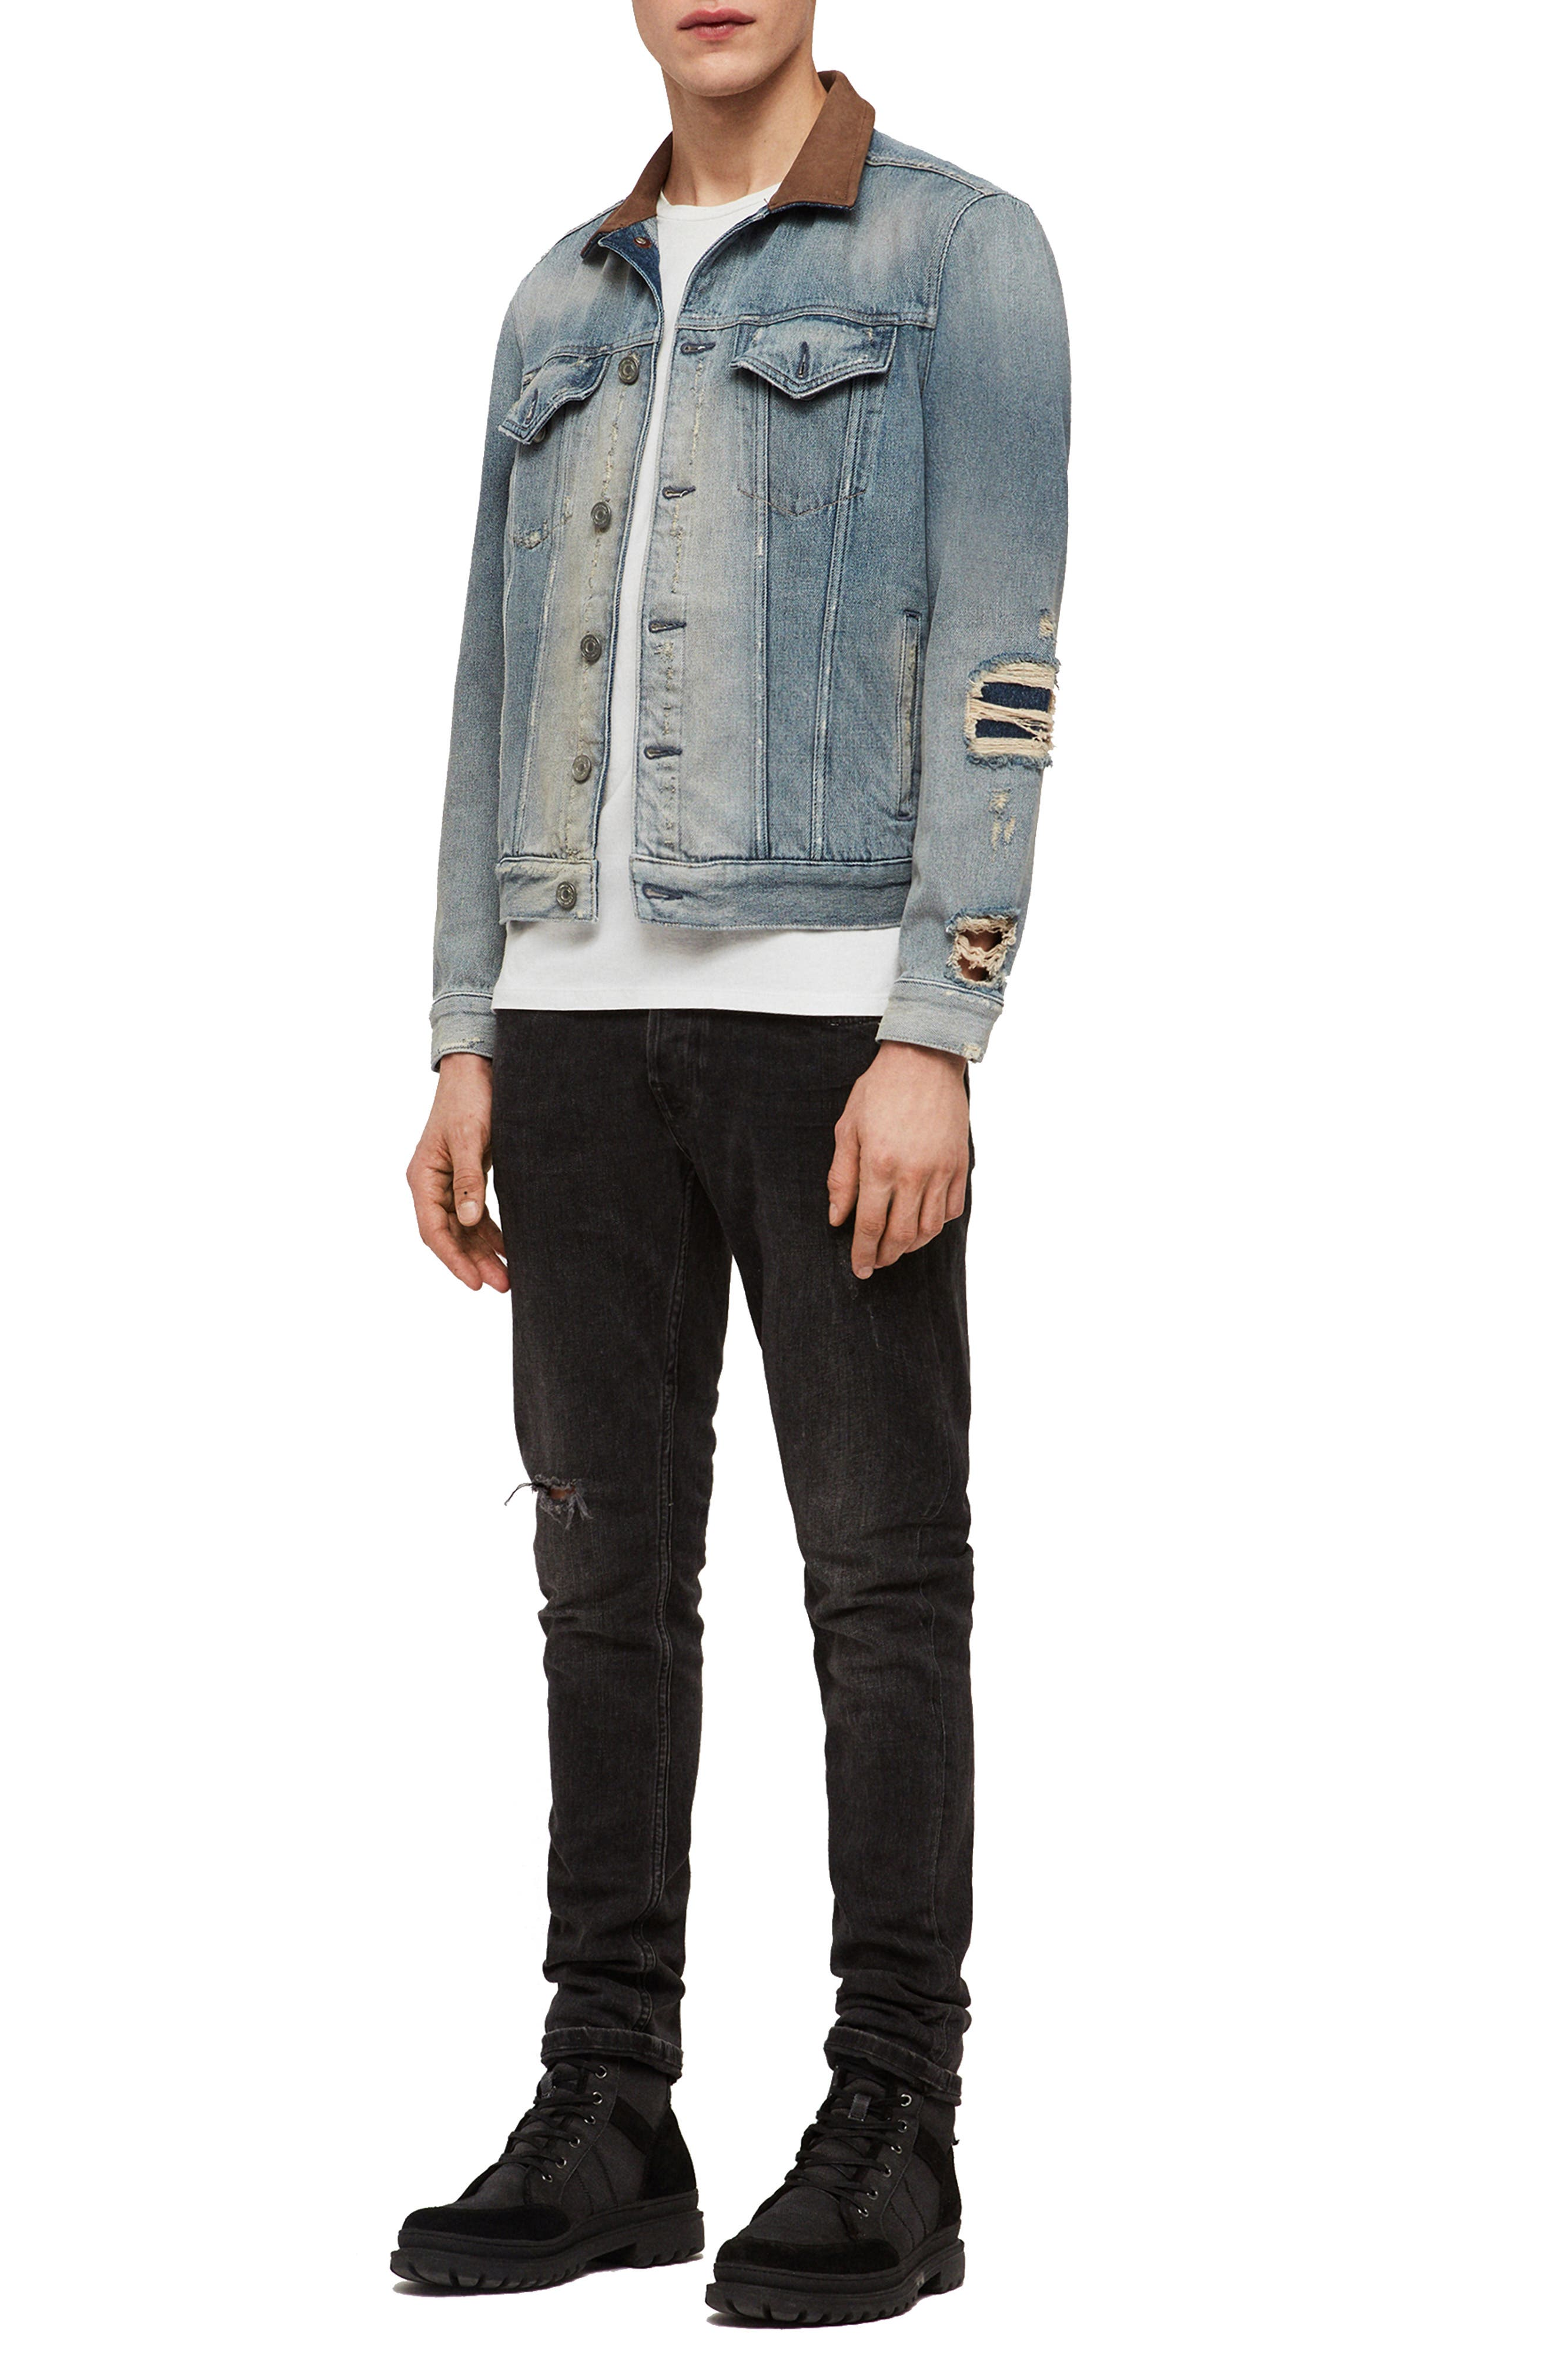 ALLSAINTS, Iren Slim Fit Denim Jacket with Leather Collar, Alternate thumbnail 7, color, MID INDIGO BLUE